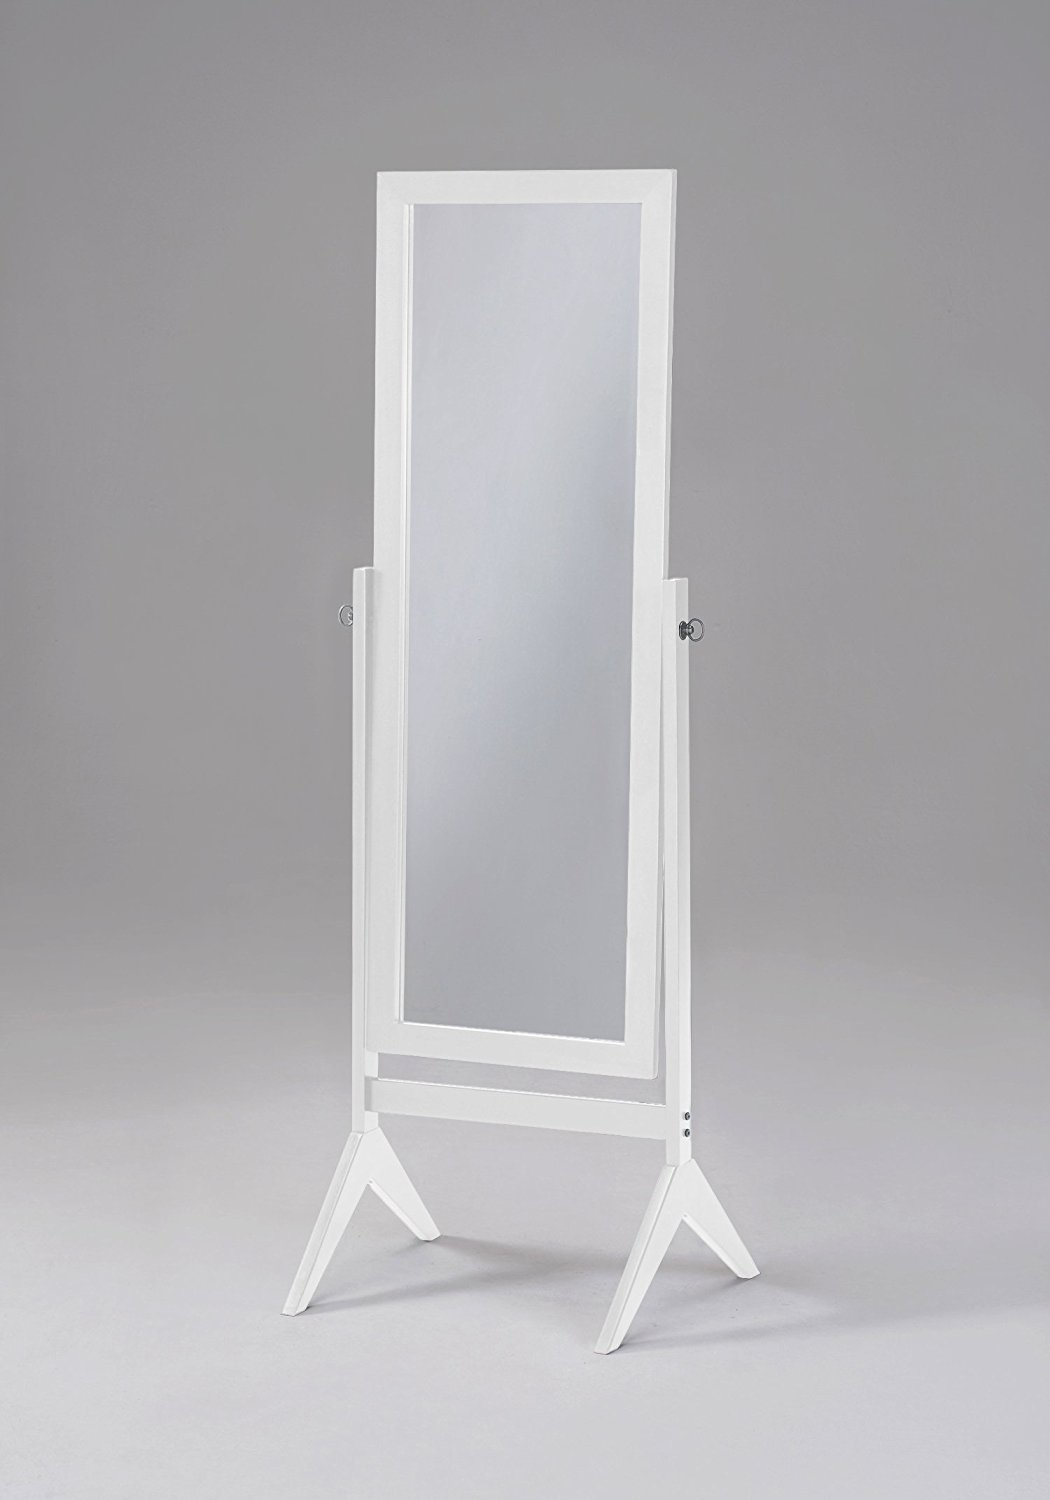 Shop Amazon Floor Mirrors Inside Free Standing Mirrors For Sale (Image 14 of 15)